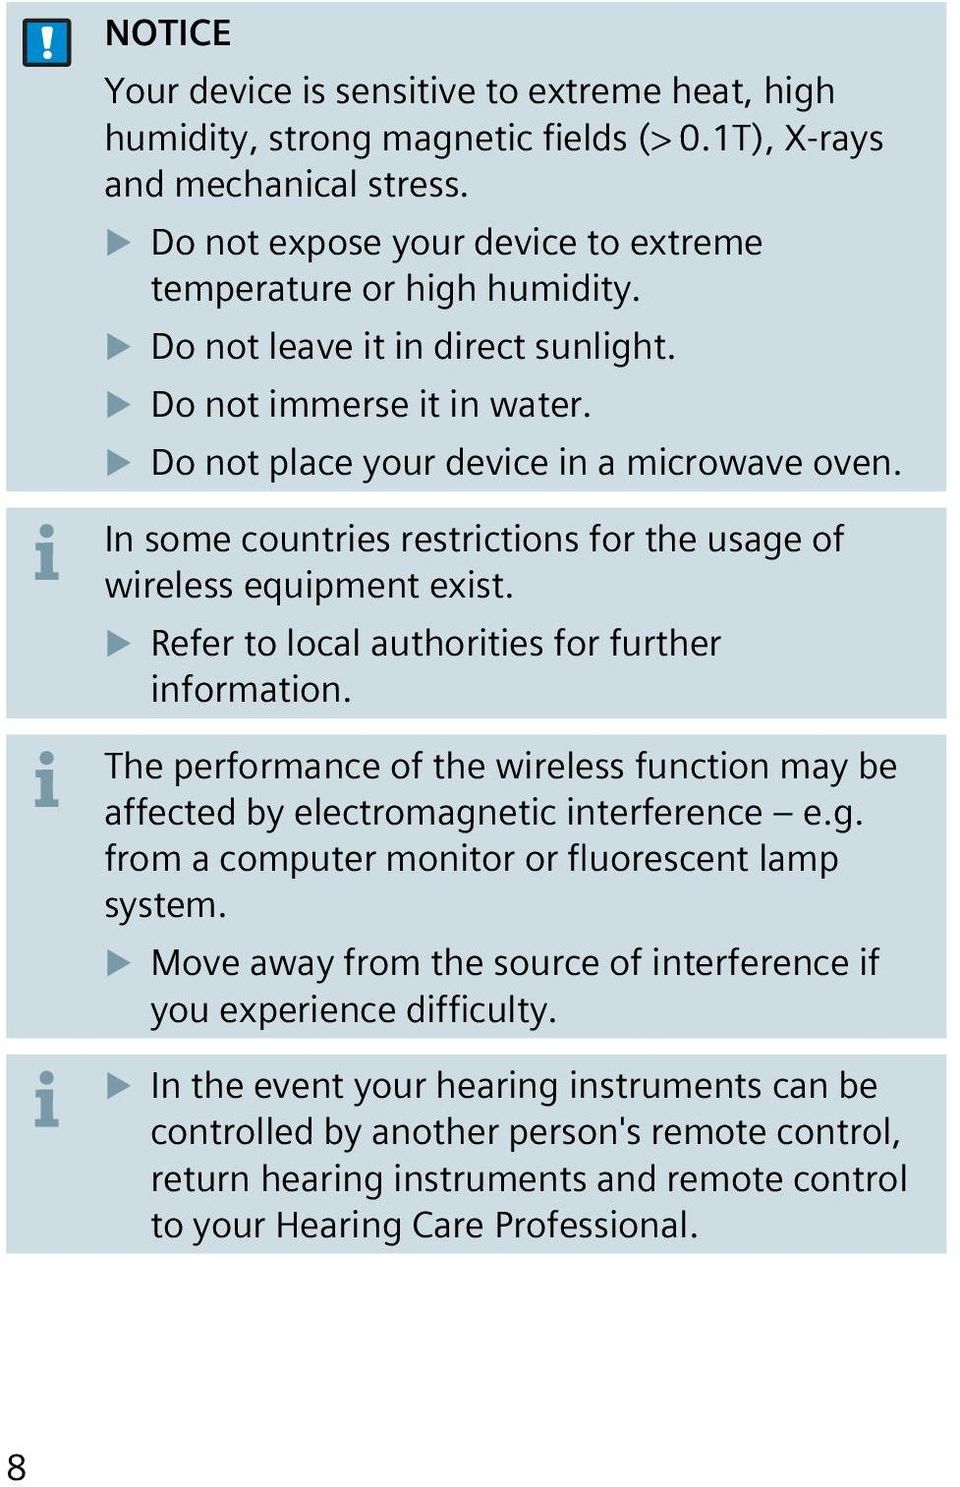 Refer to local authorities for further information. The performance of the wireless function may be affected by electromagnetic interference e.g. from a computer monitor or fluorescent lamp system.